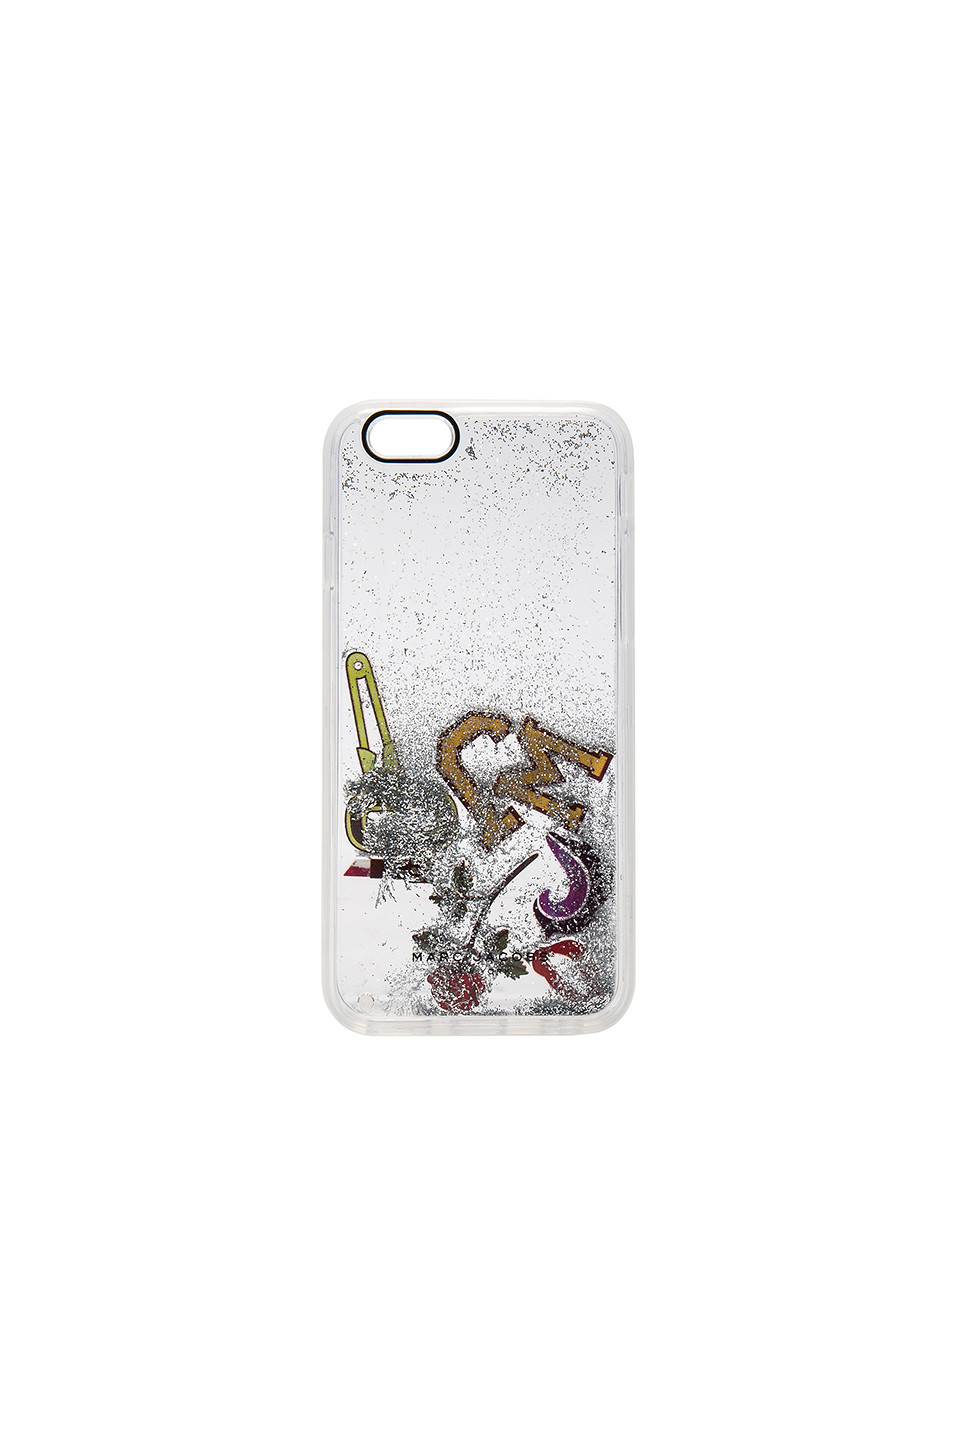 MOVING MJ COLLAGE IPHONE 6S CASE